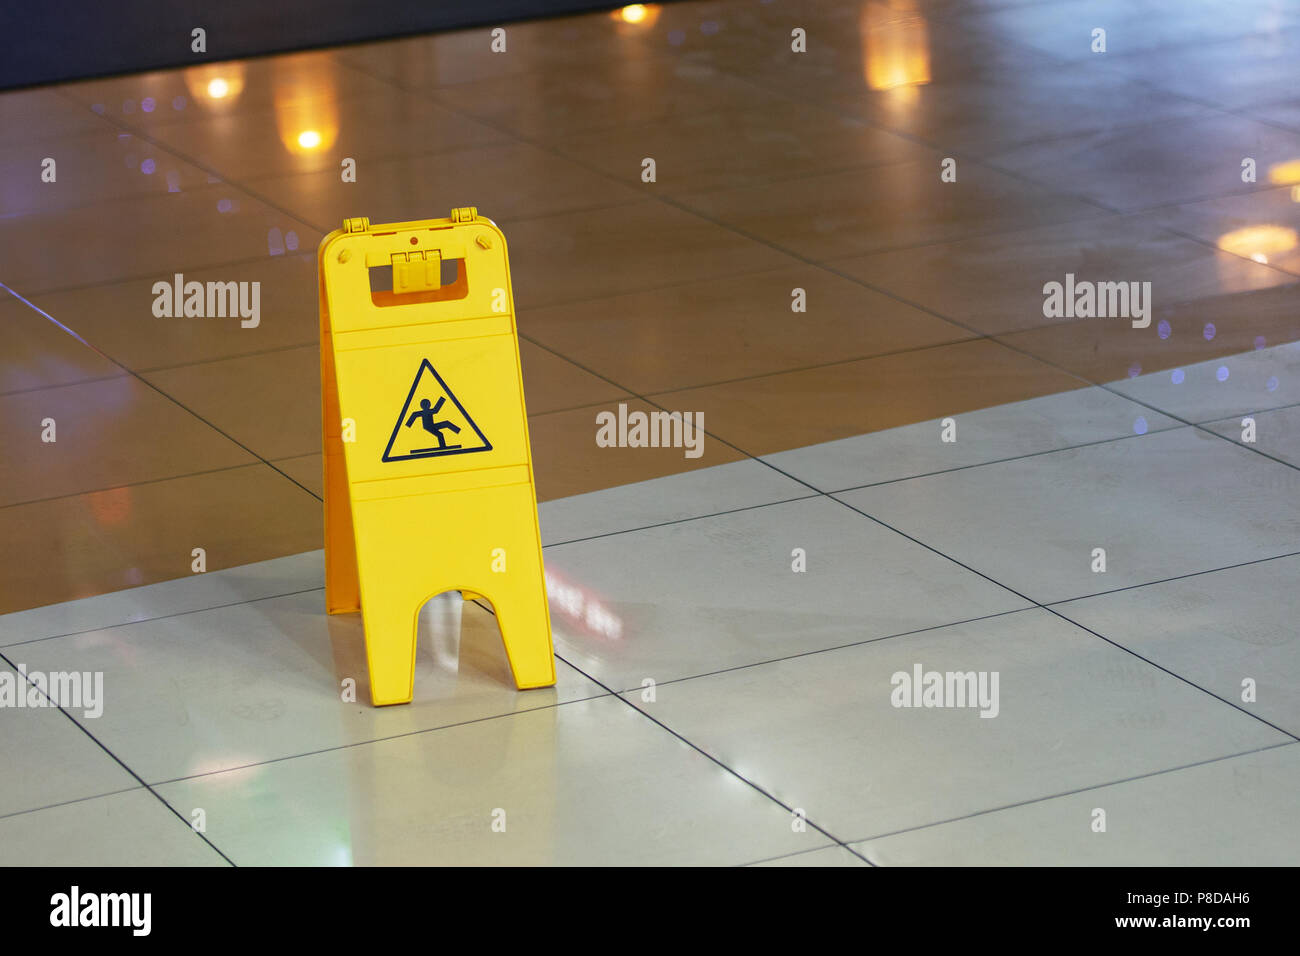 Tile Floor Fall Stock Photos Tile Floor Fall Stock Images Alamy - Dah tile